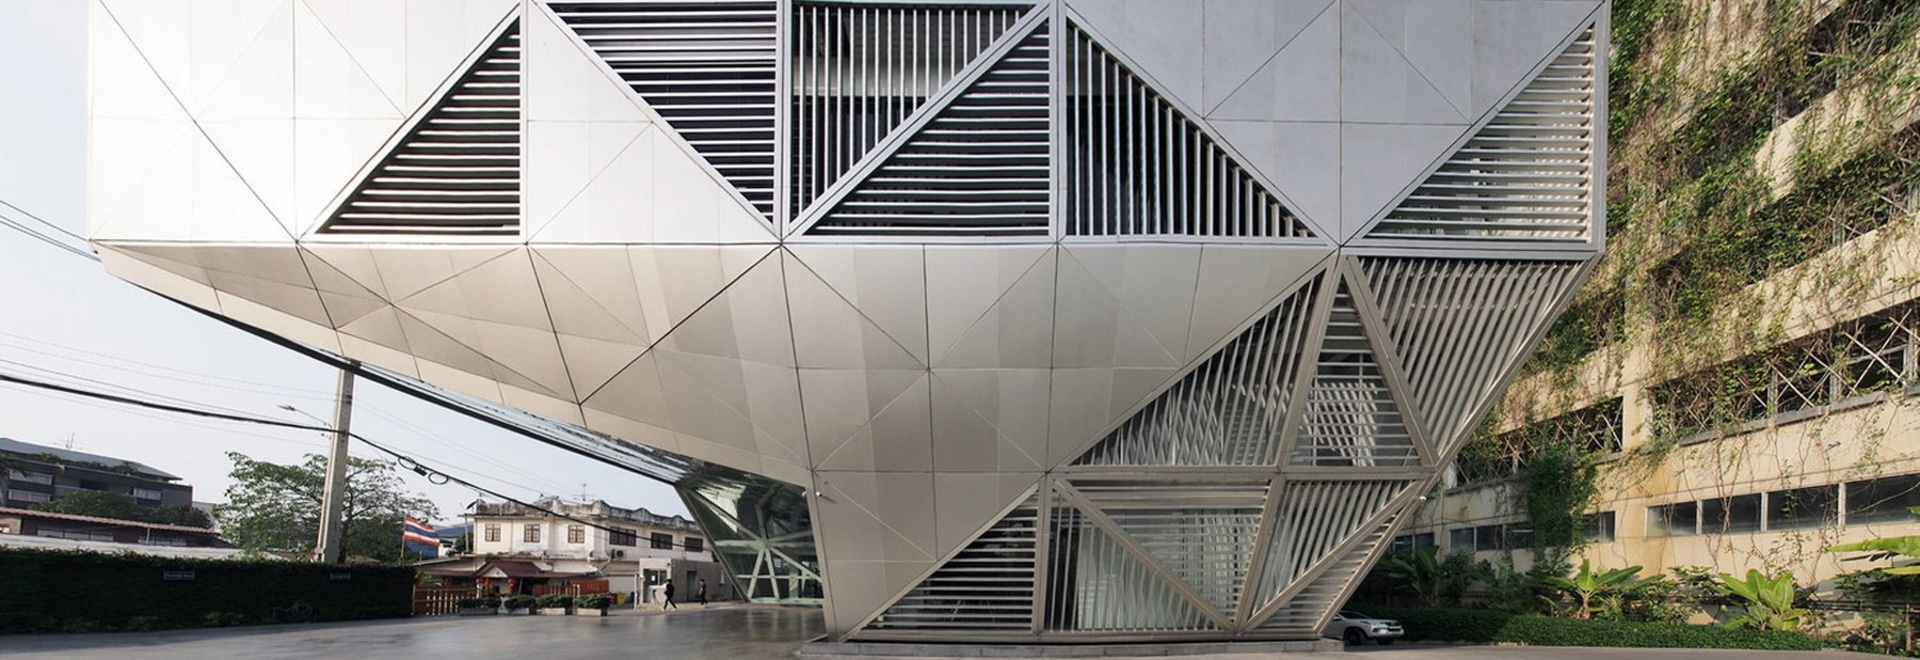 ASWA wraps the bitwise headquarters in thailand in a geometric, multi-faceted exterior shell